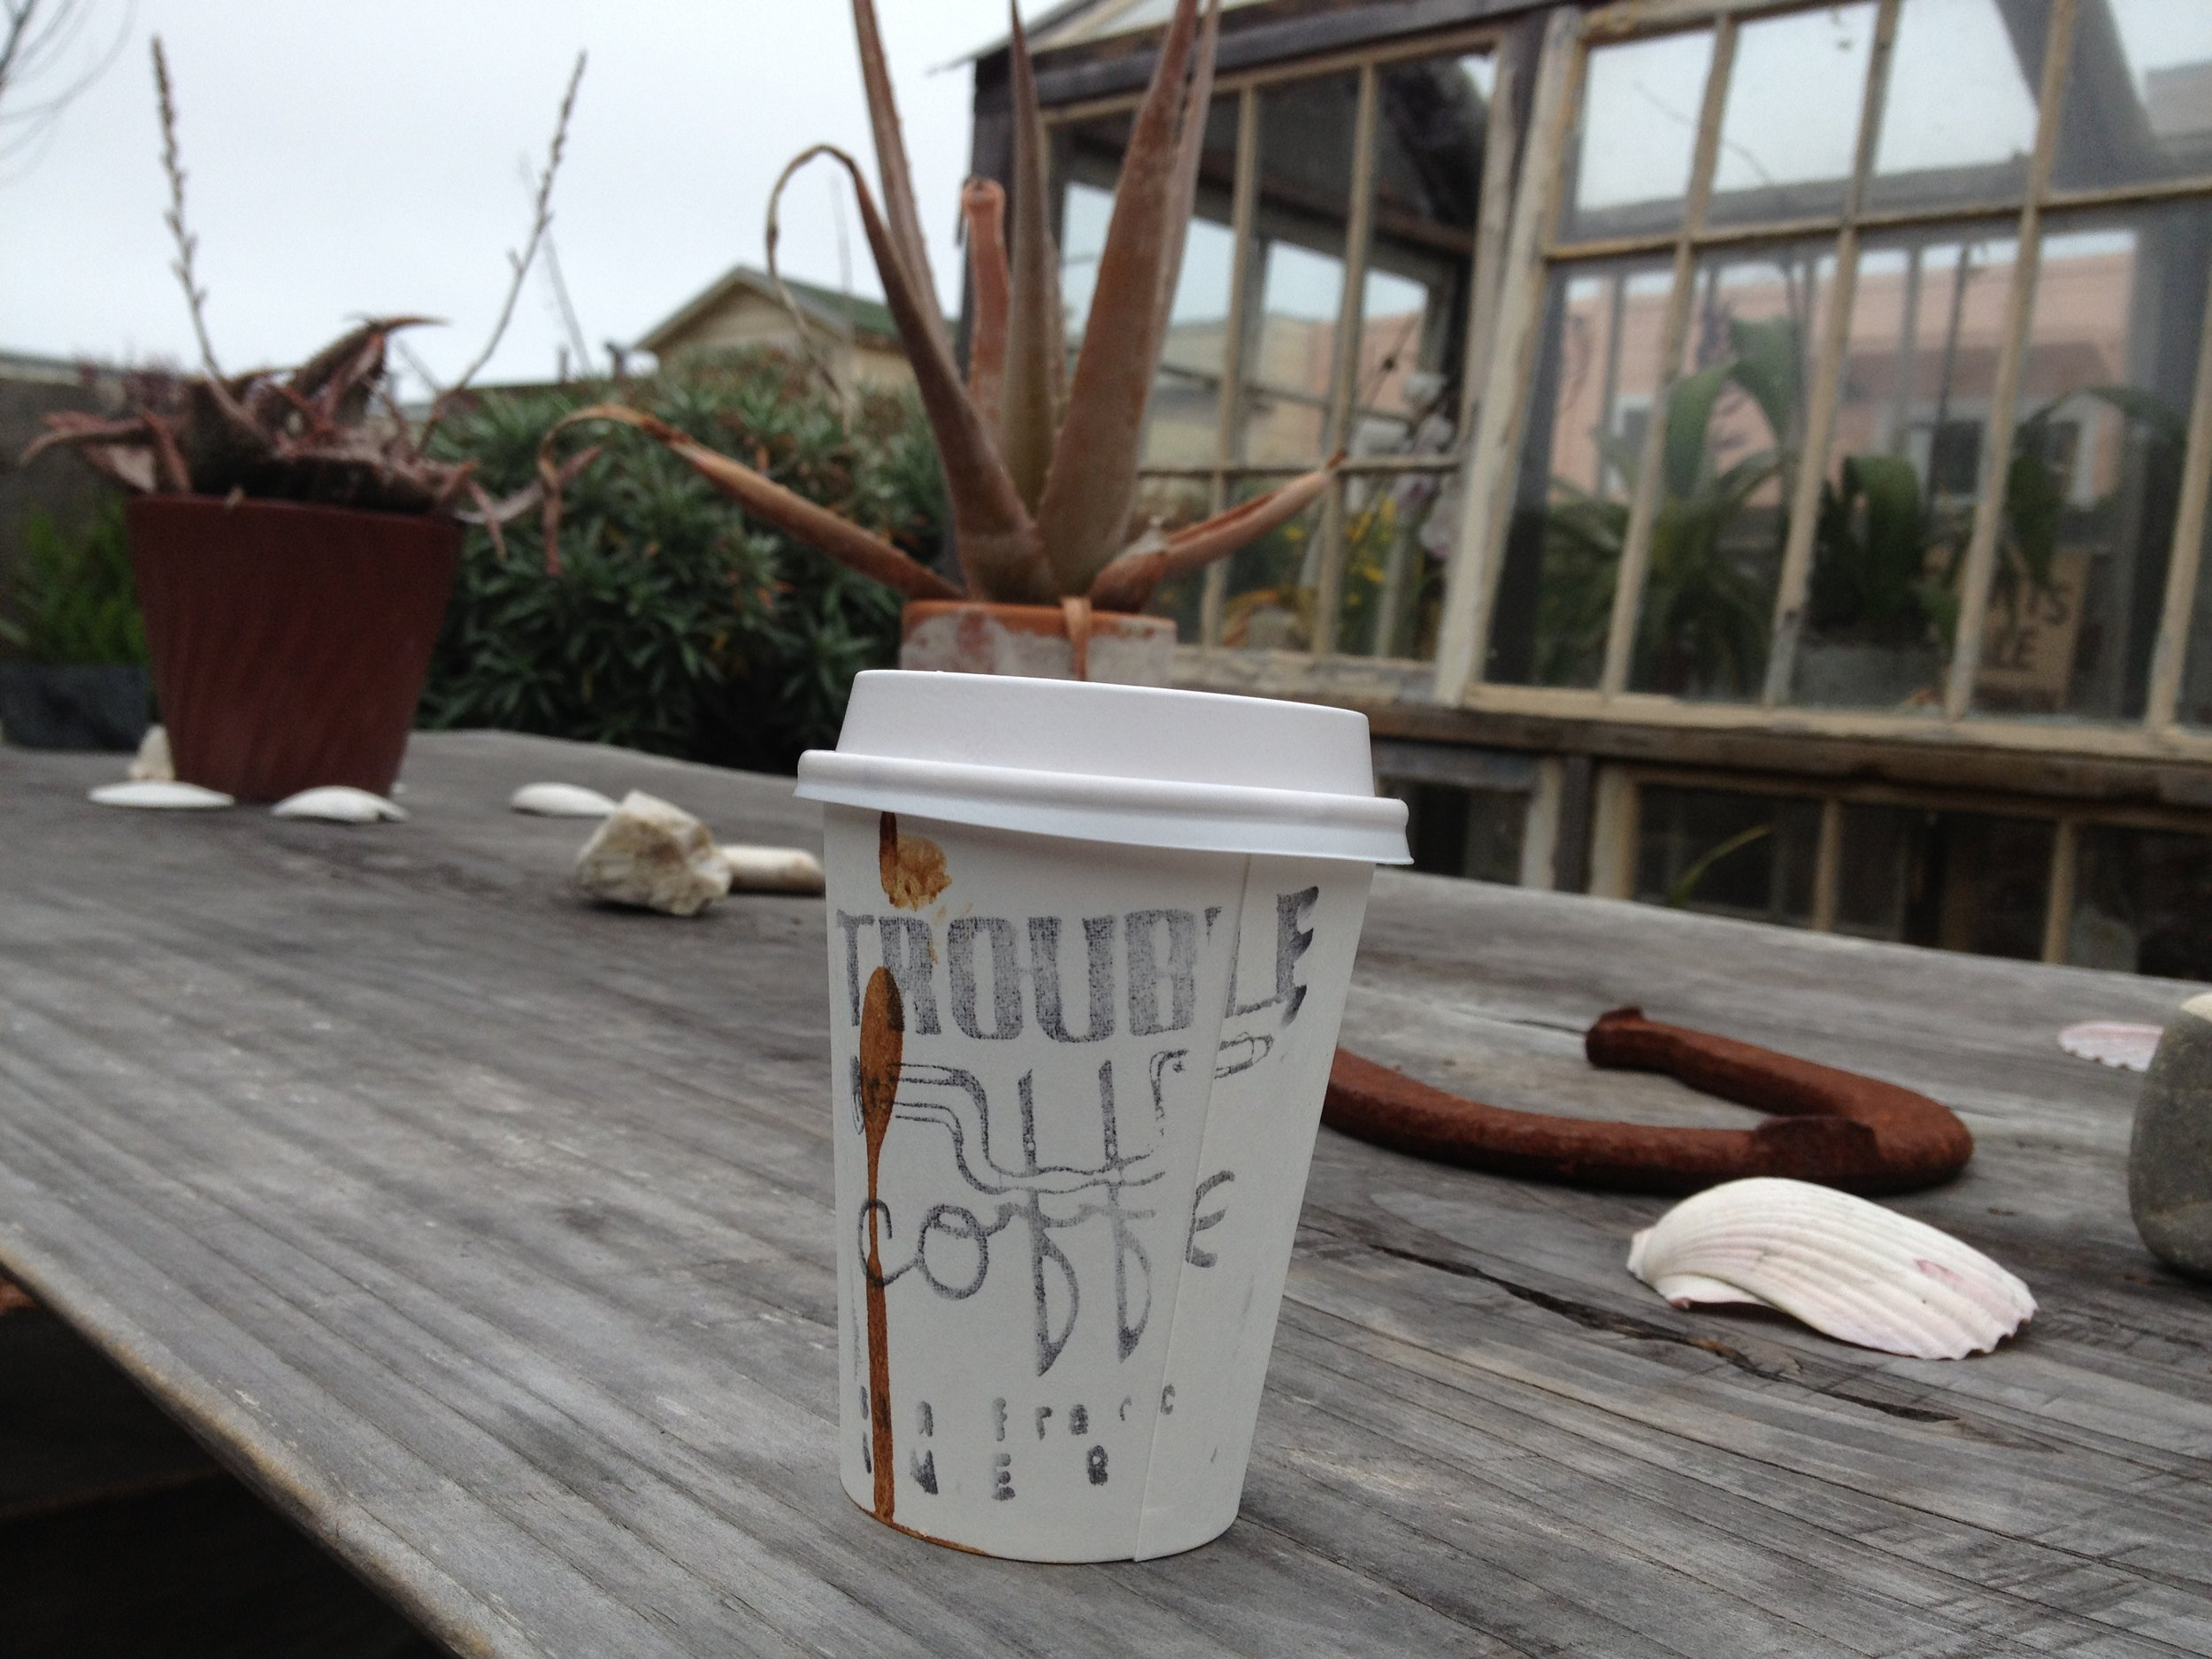 Sunday brunch adventures -- trying glorious coffee at Trouble Coffee while sitting outside.